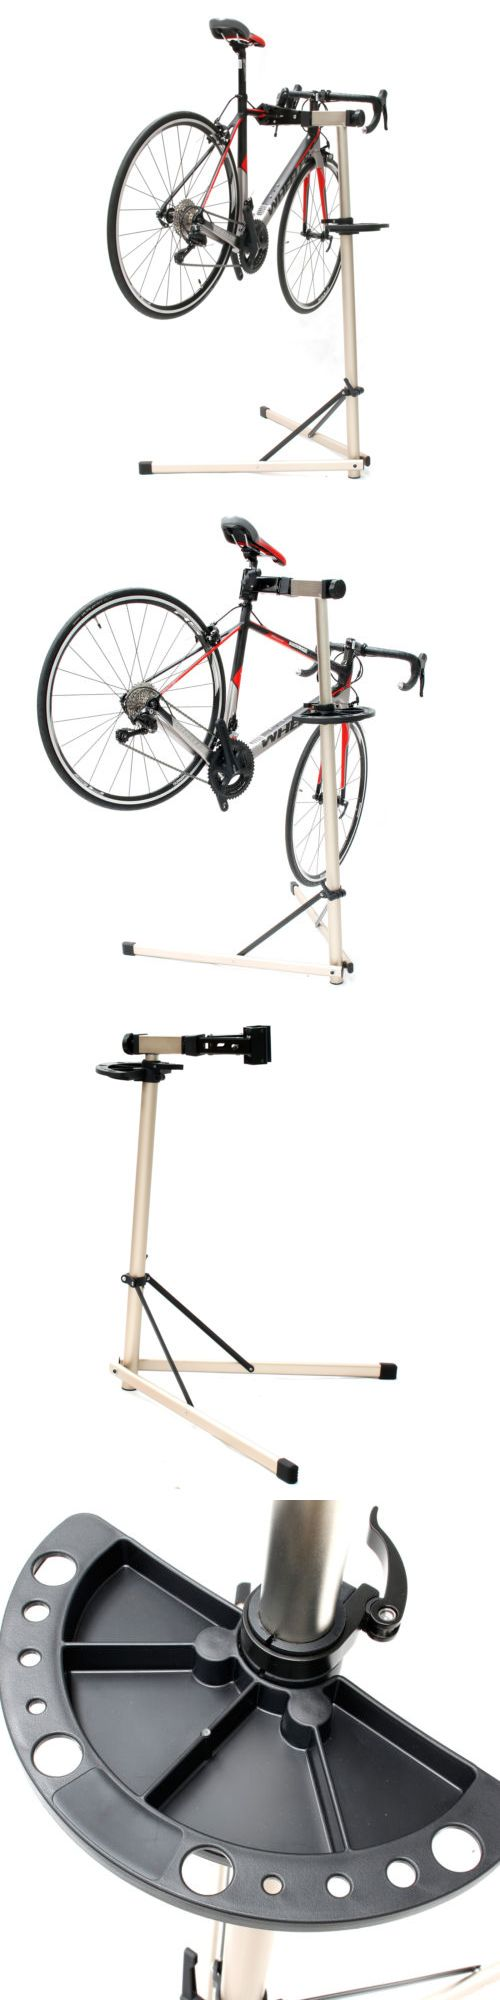 Workstands 177847: Venzo Alloy Bicycle Workstand Bike Repair Stand -> BUY IT NOW ONLY: $89.99 on eBay!